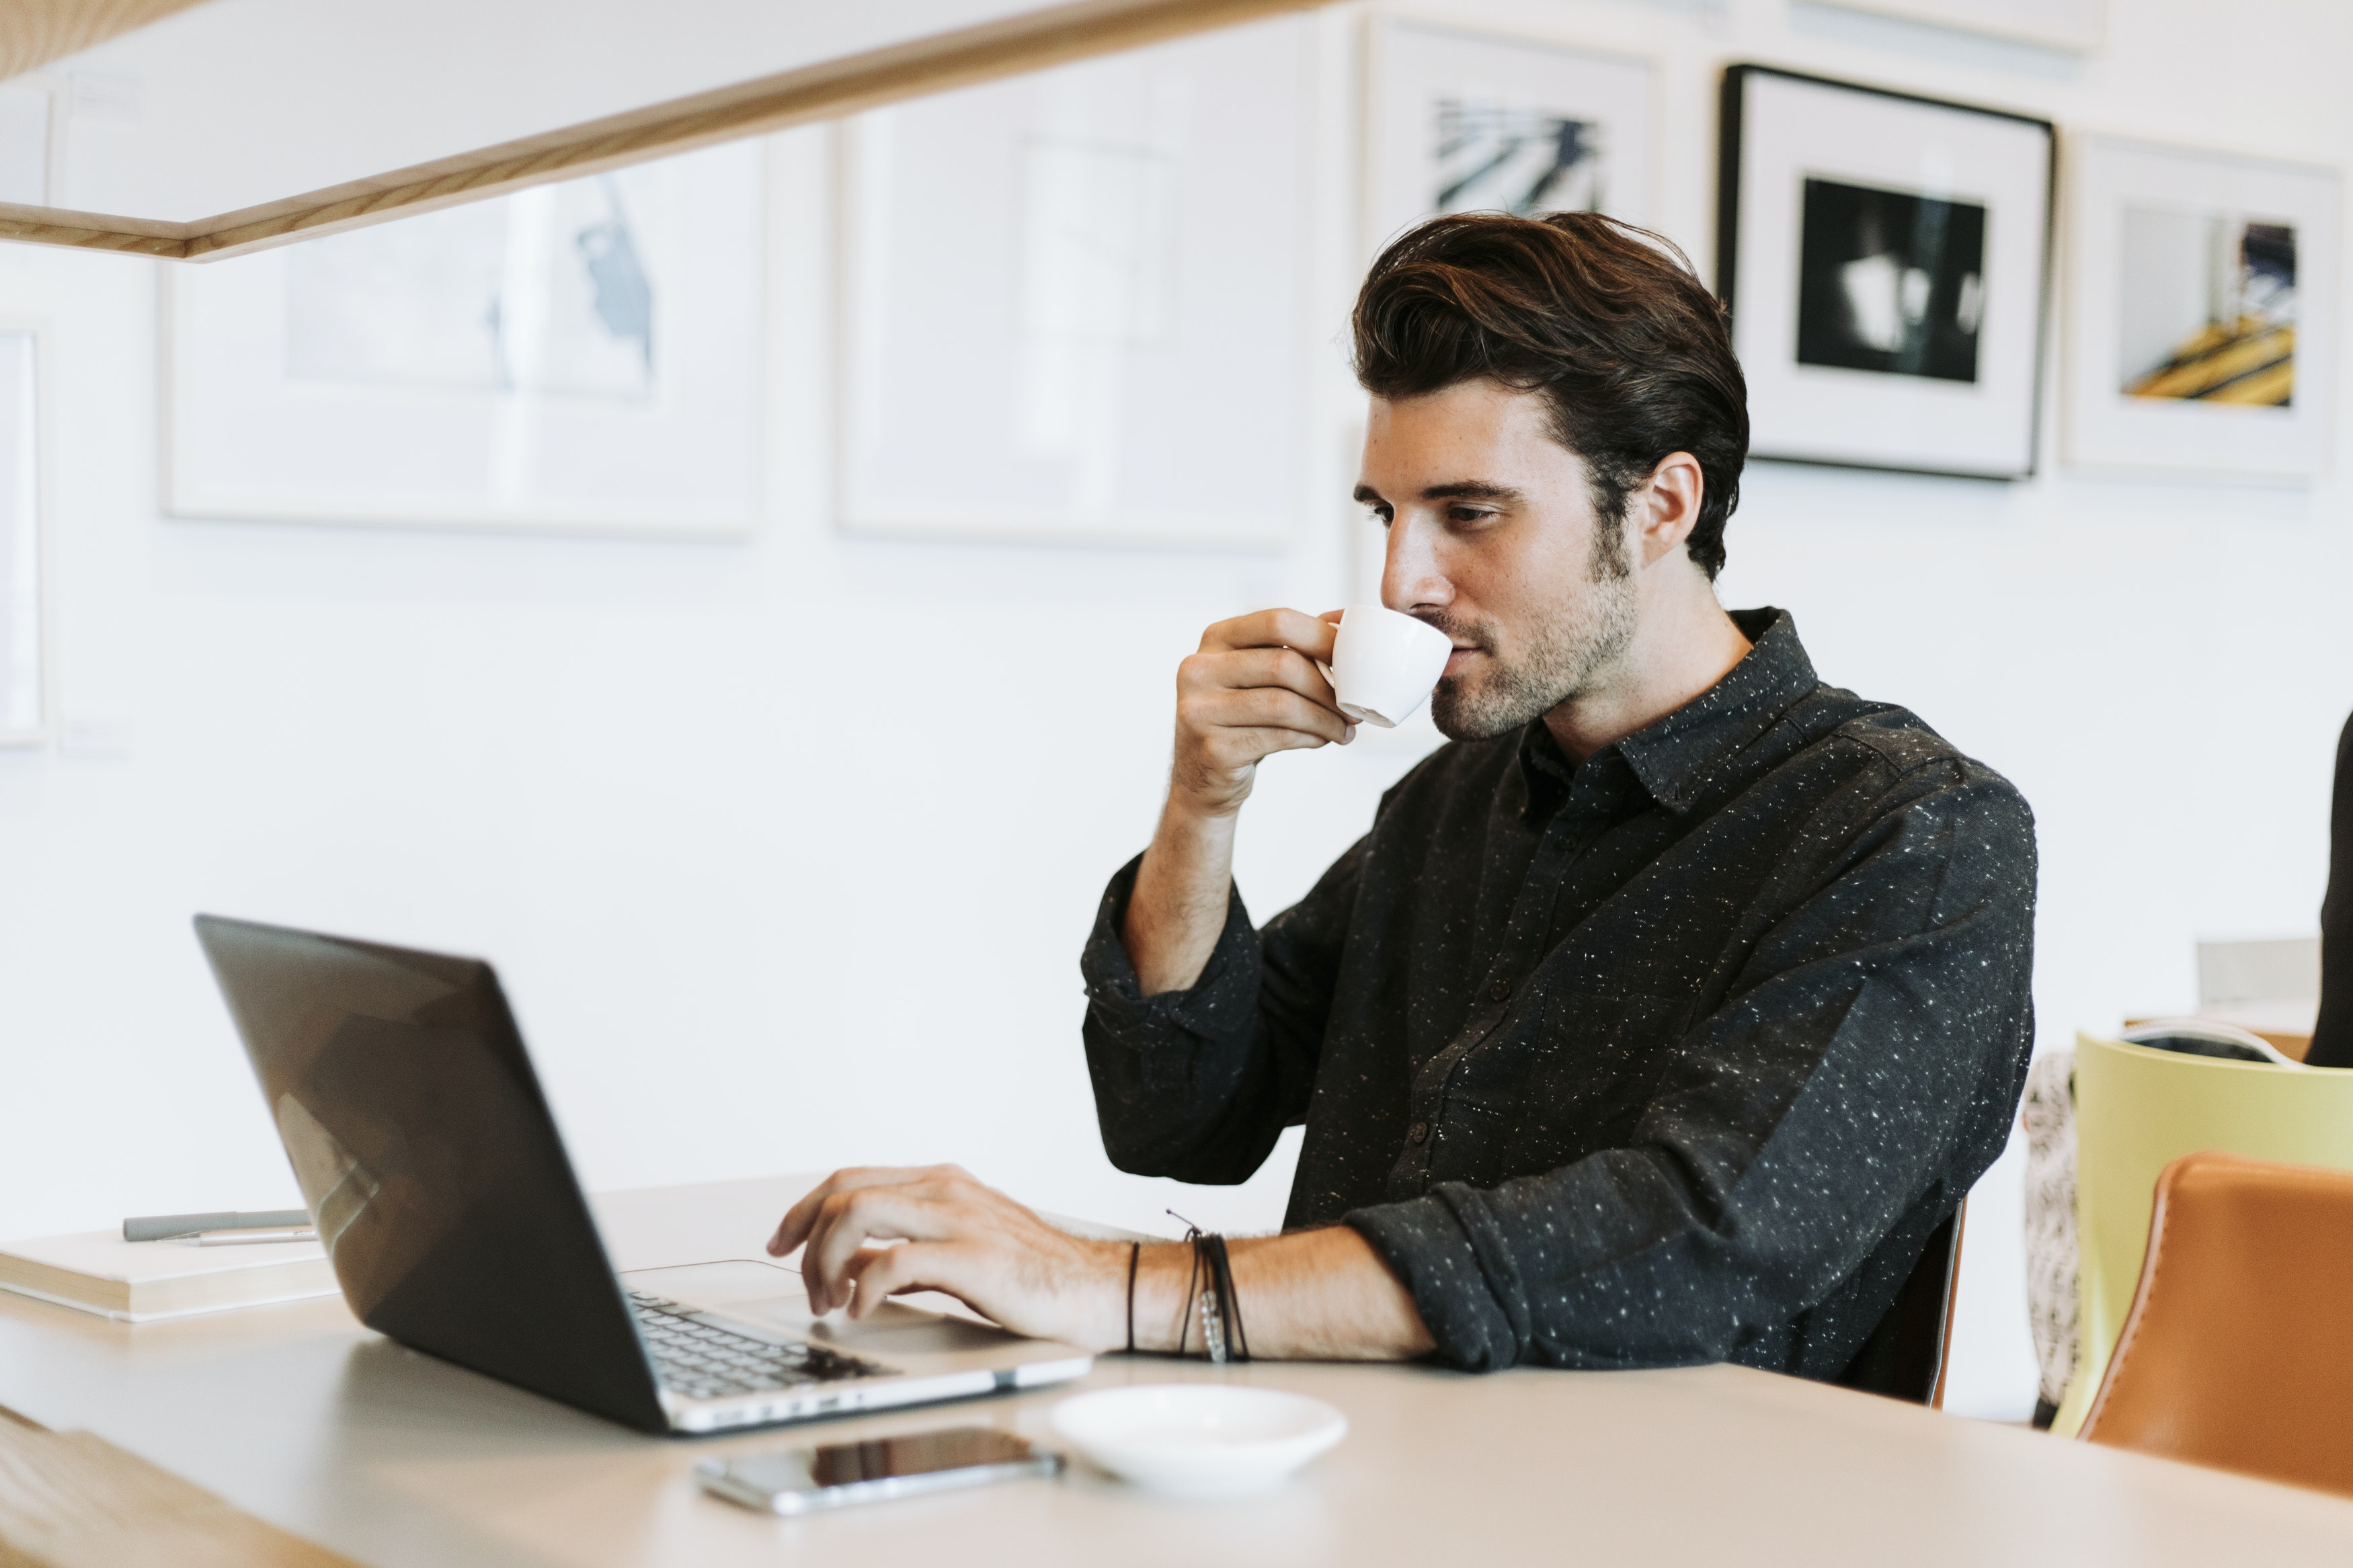 A man sips espresso by his laptop, preparing for his online counseling session.